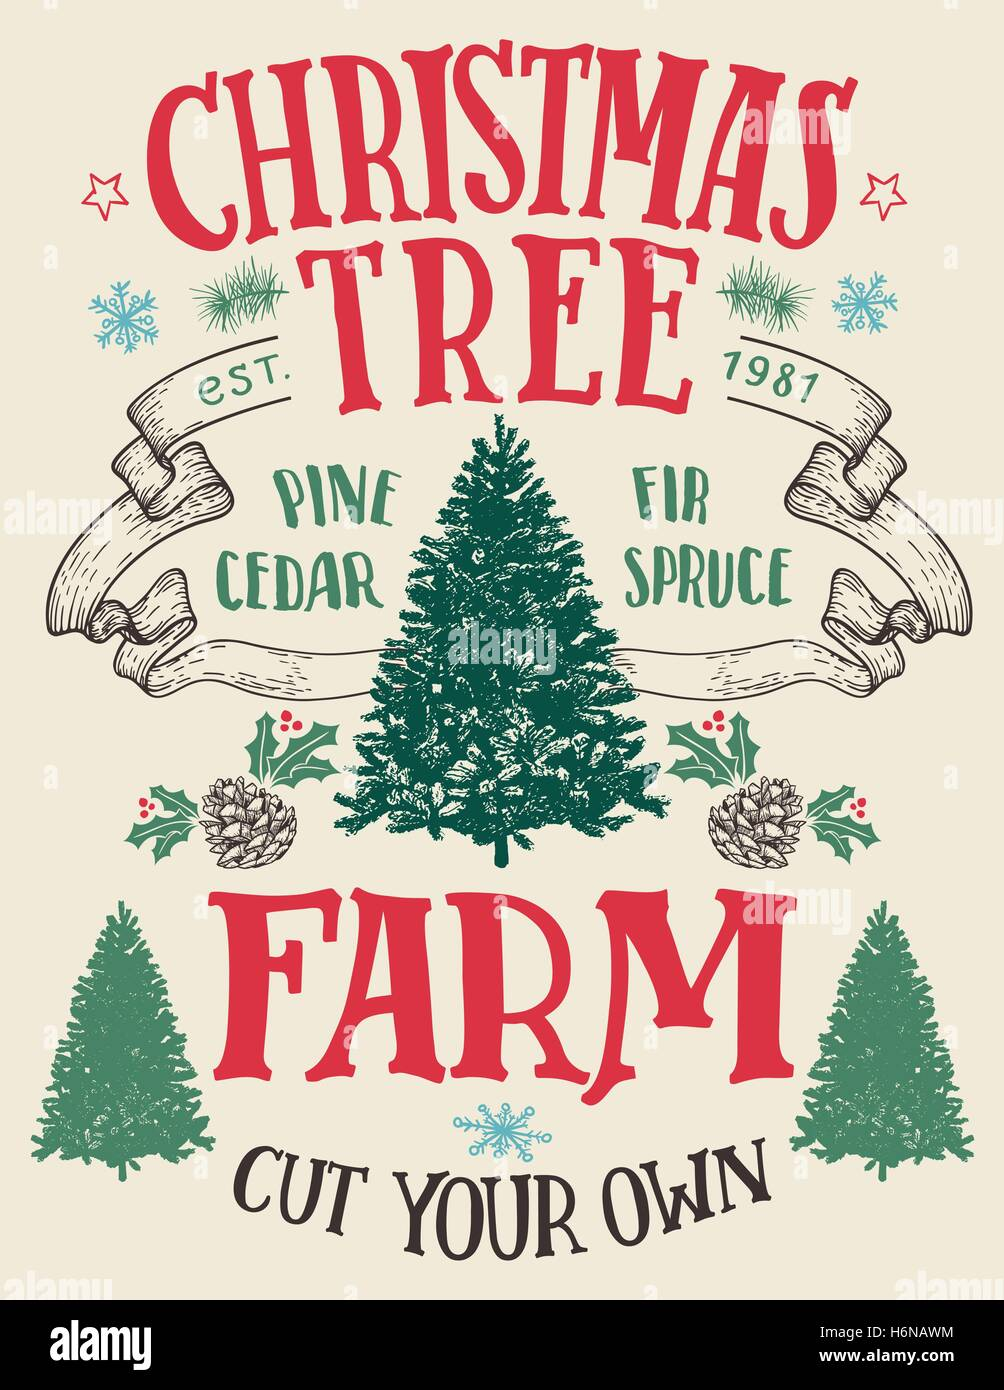 Cut Your Own Christmas Tree.Christmas Tree Farm Cut Your Own Hand Lettering Vintage